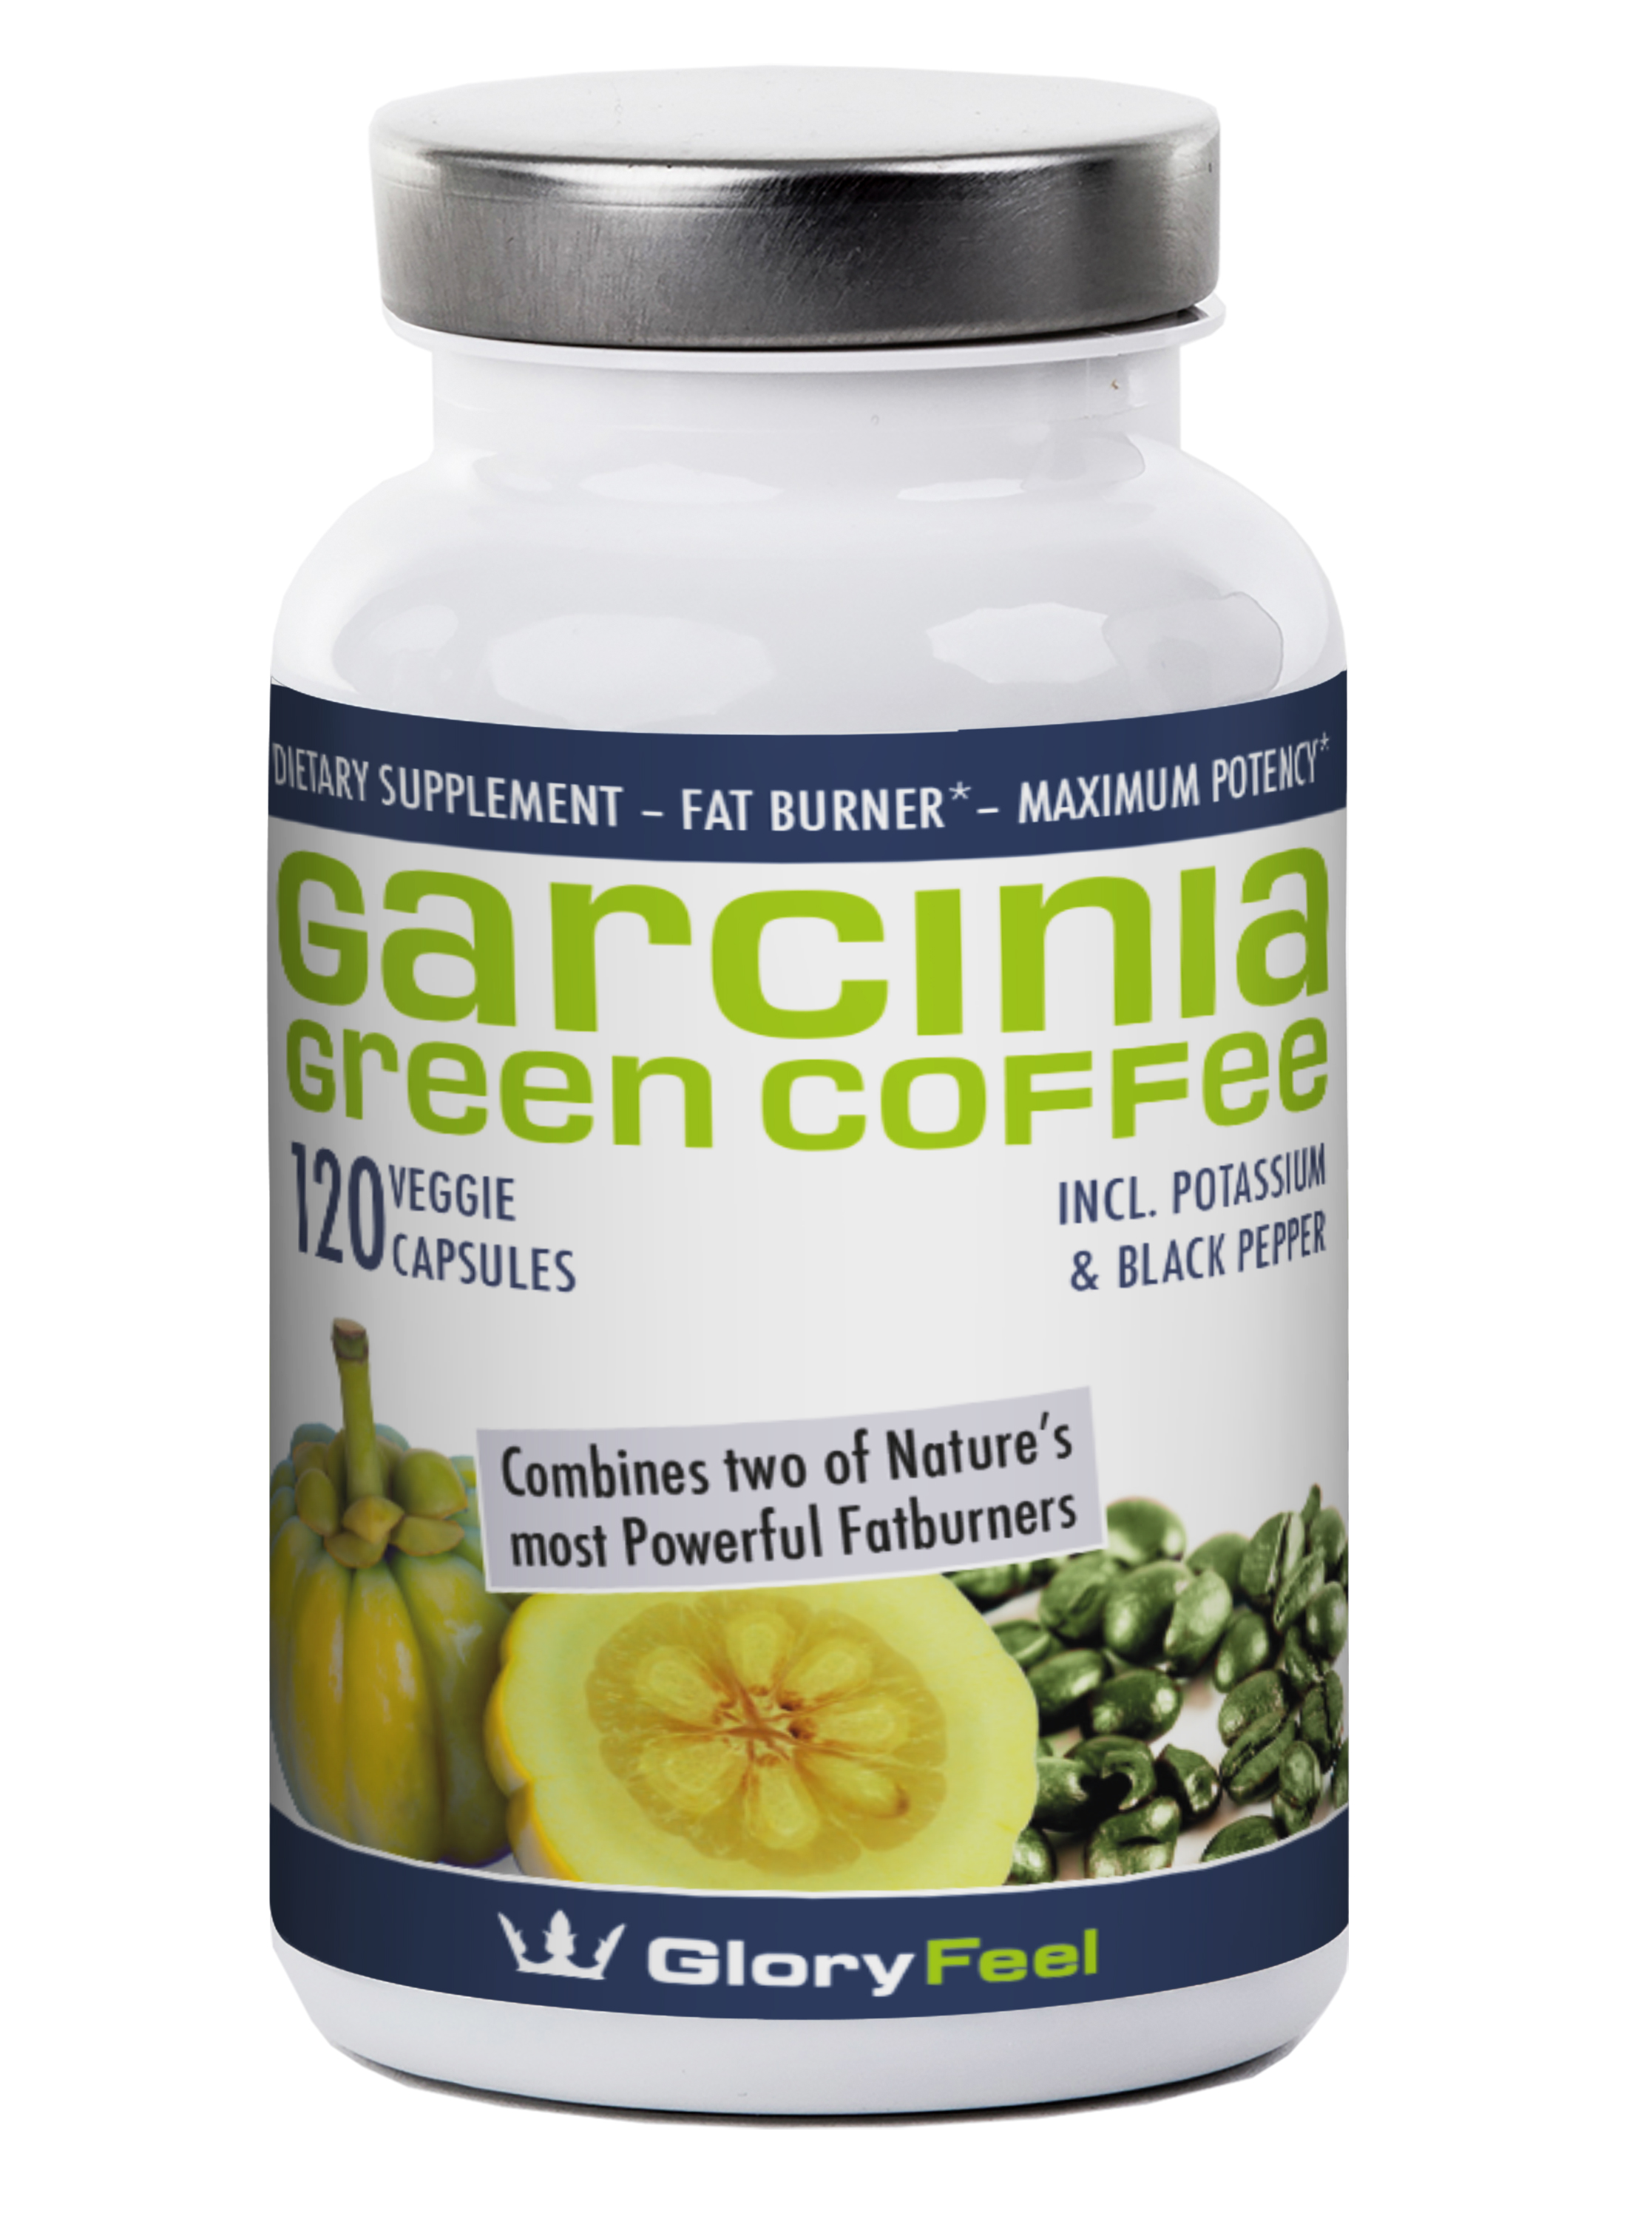 #gloryfeel Pure Garcinia Cambogia Extract plus Green Coffee Bean Extract